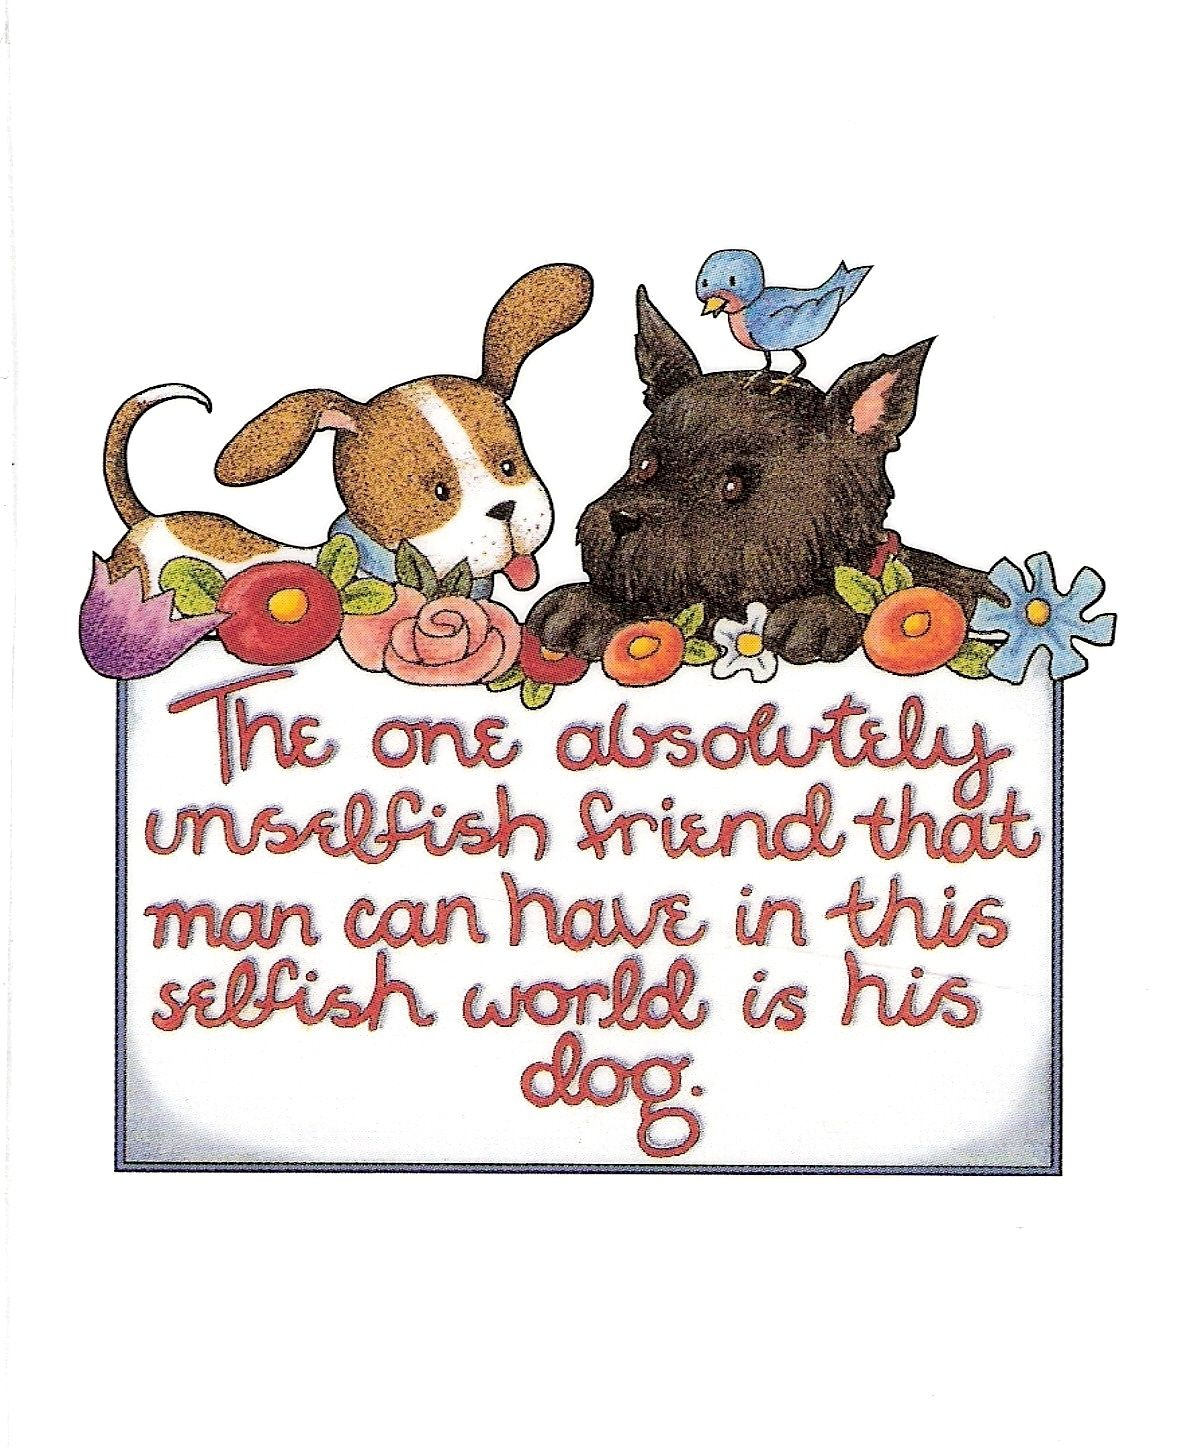 This is SO true. My family's dogs has always been my best friend.